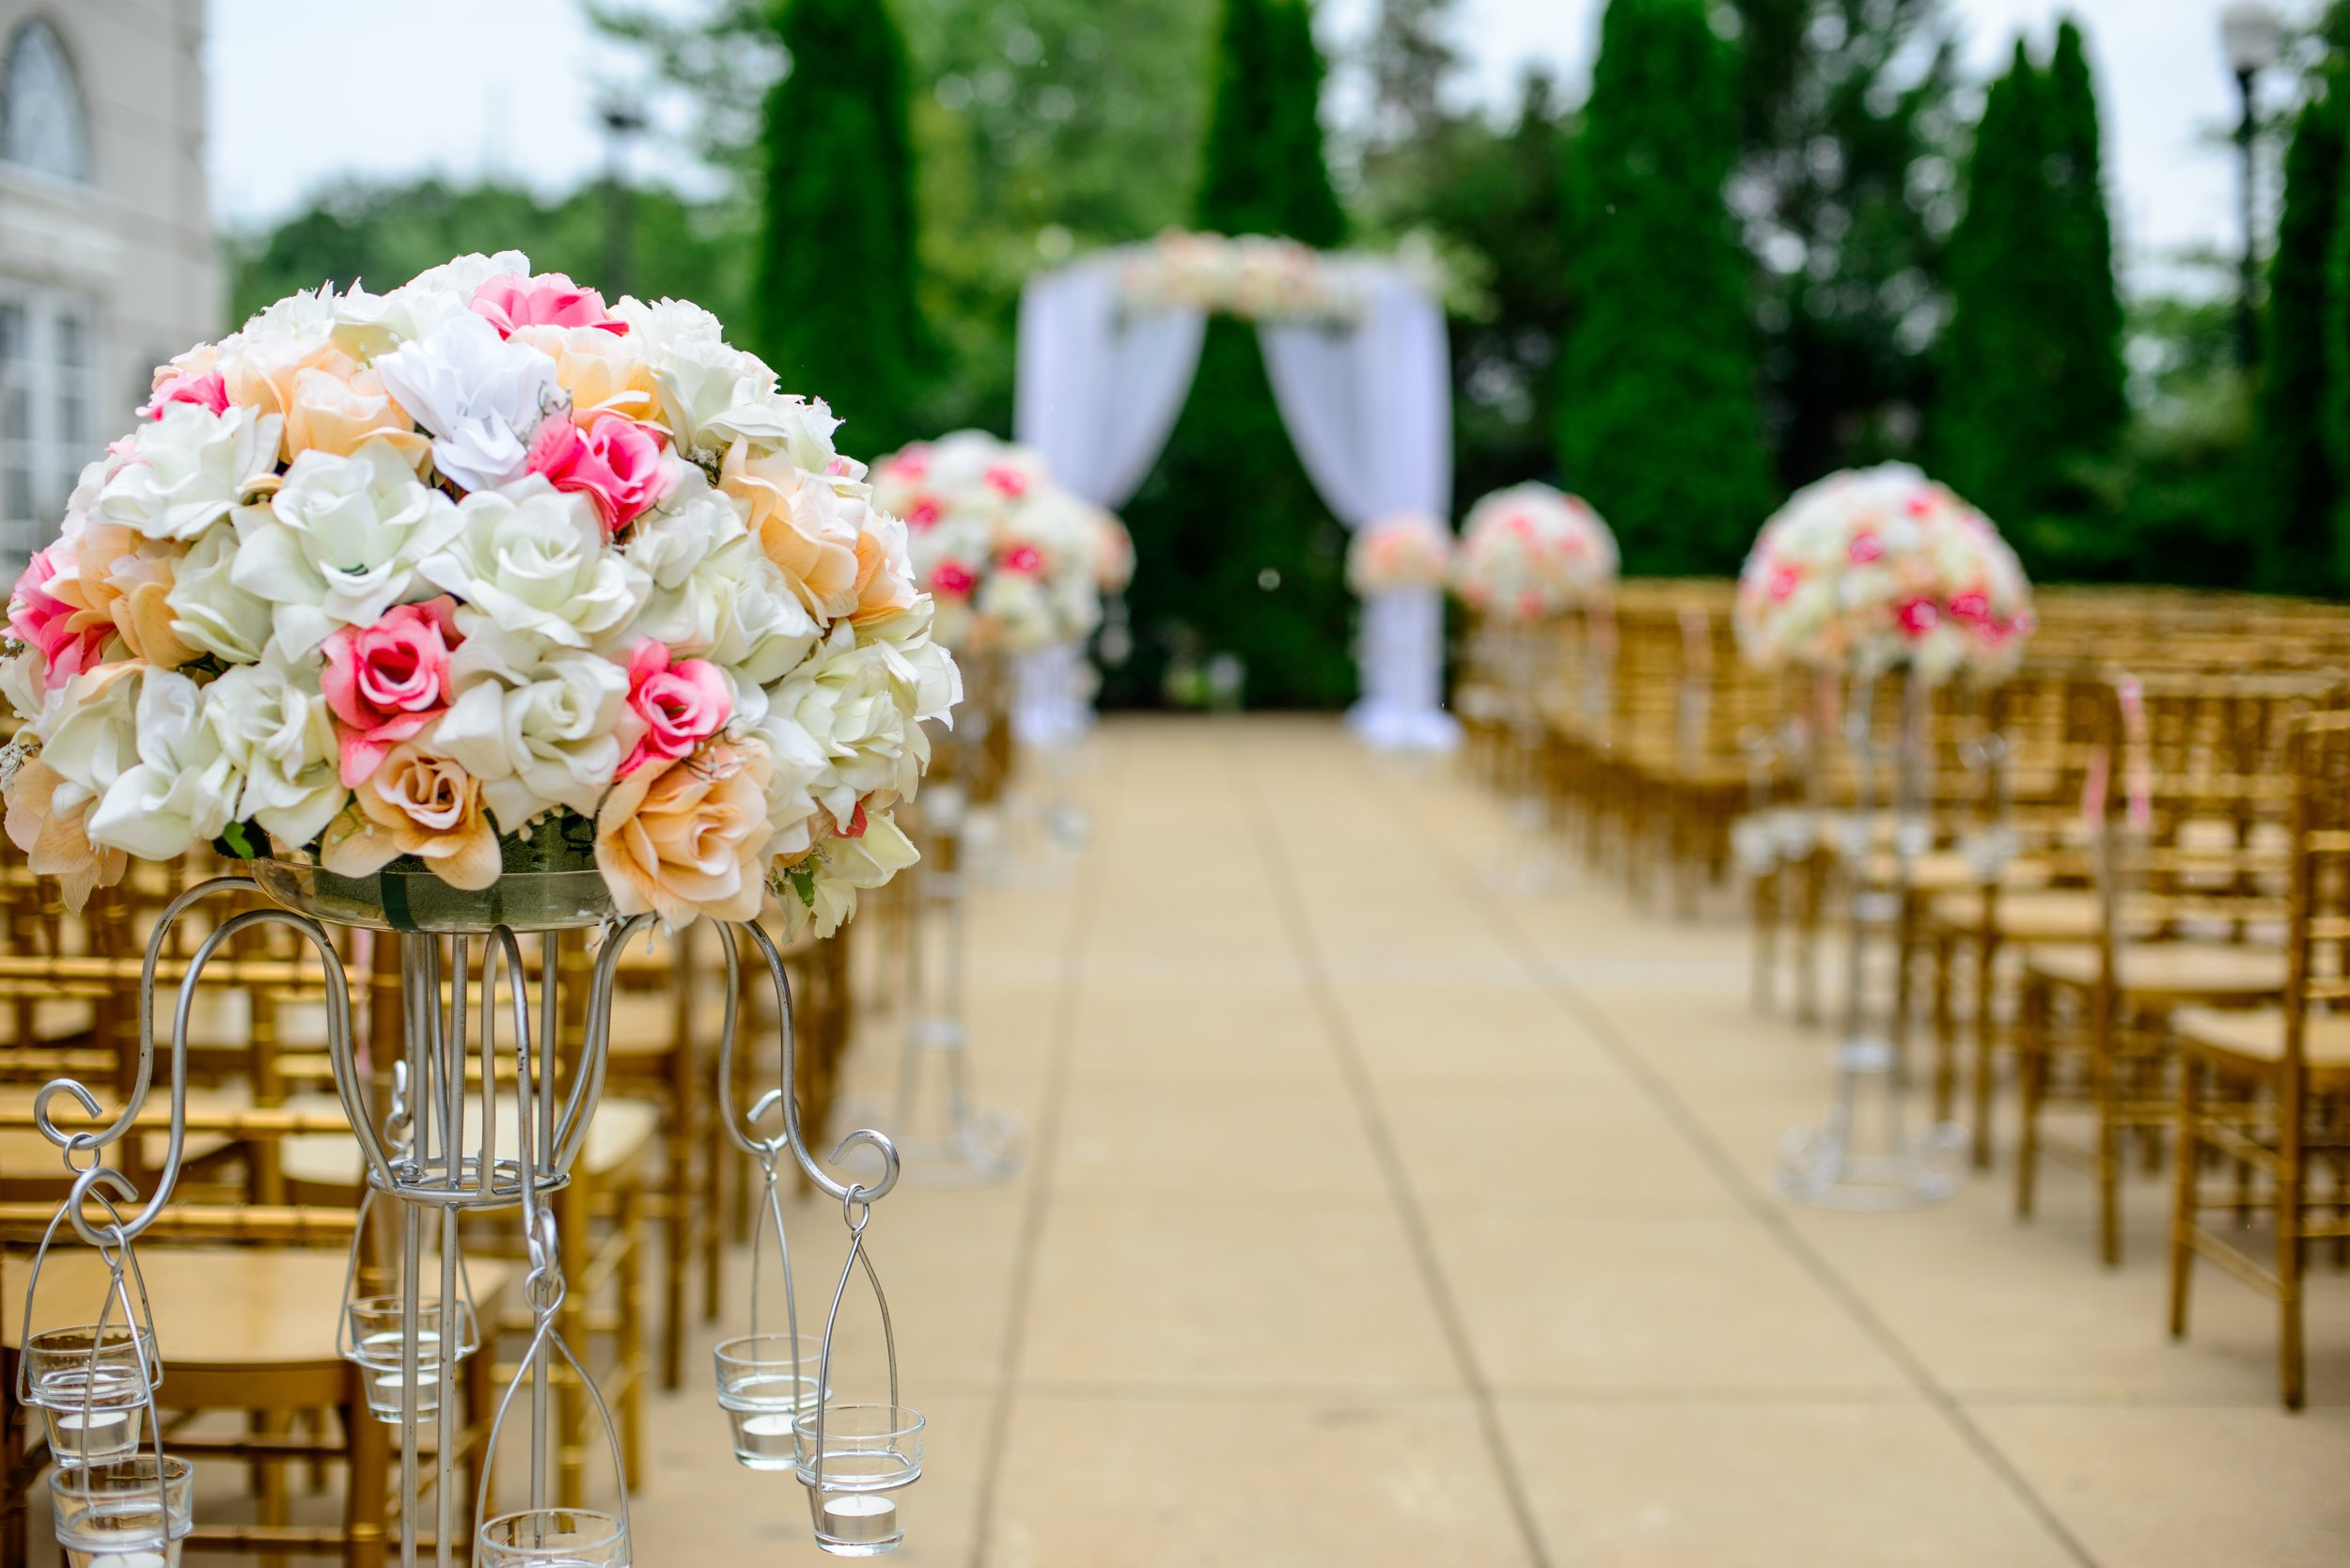 Ceremony Sound System  -add a second sound system for your ceremony.